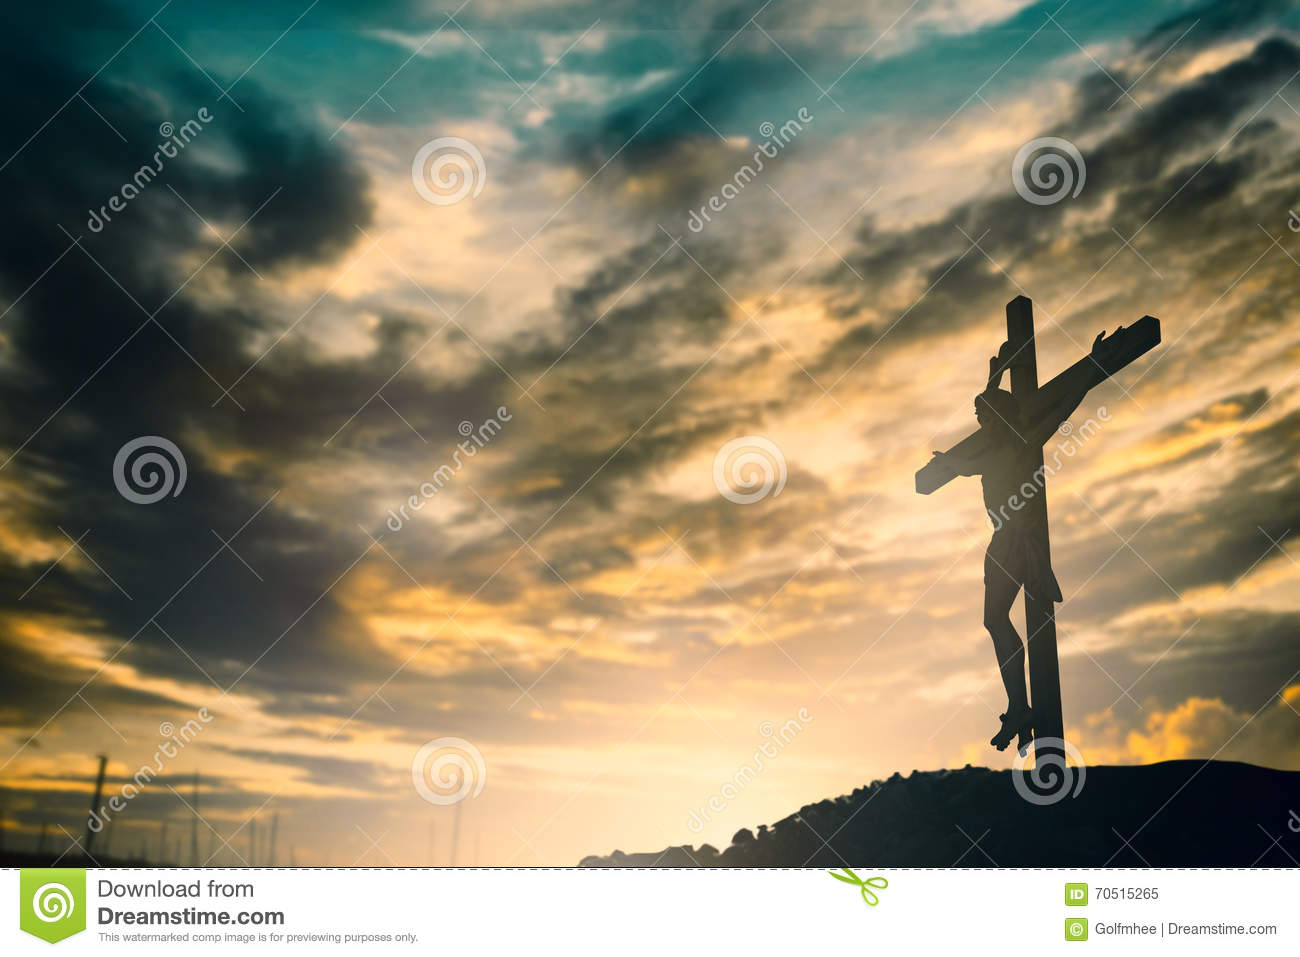 the religious concept of the jesus christ in christianity religion Chapter 9: religionless christianity  whoever sets eyes on the body of jesus christ in faith can never again speak of the world as though it were lost, as though .